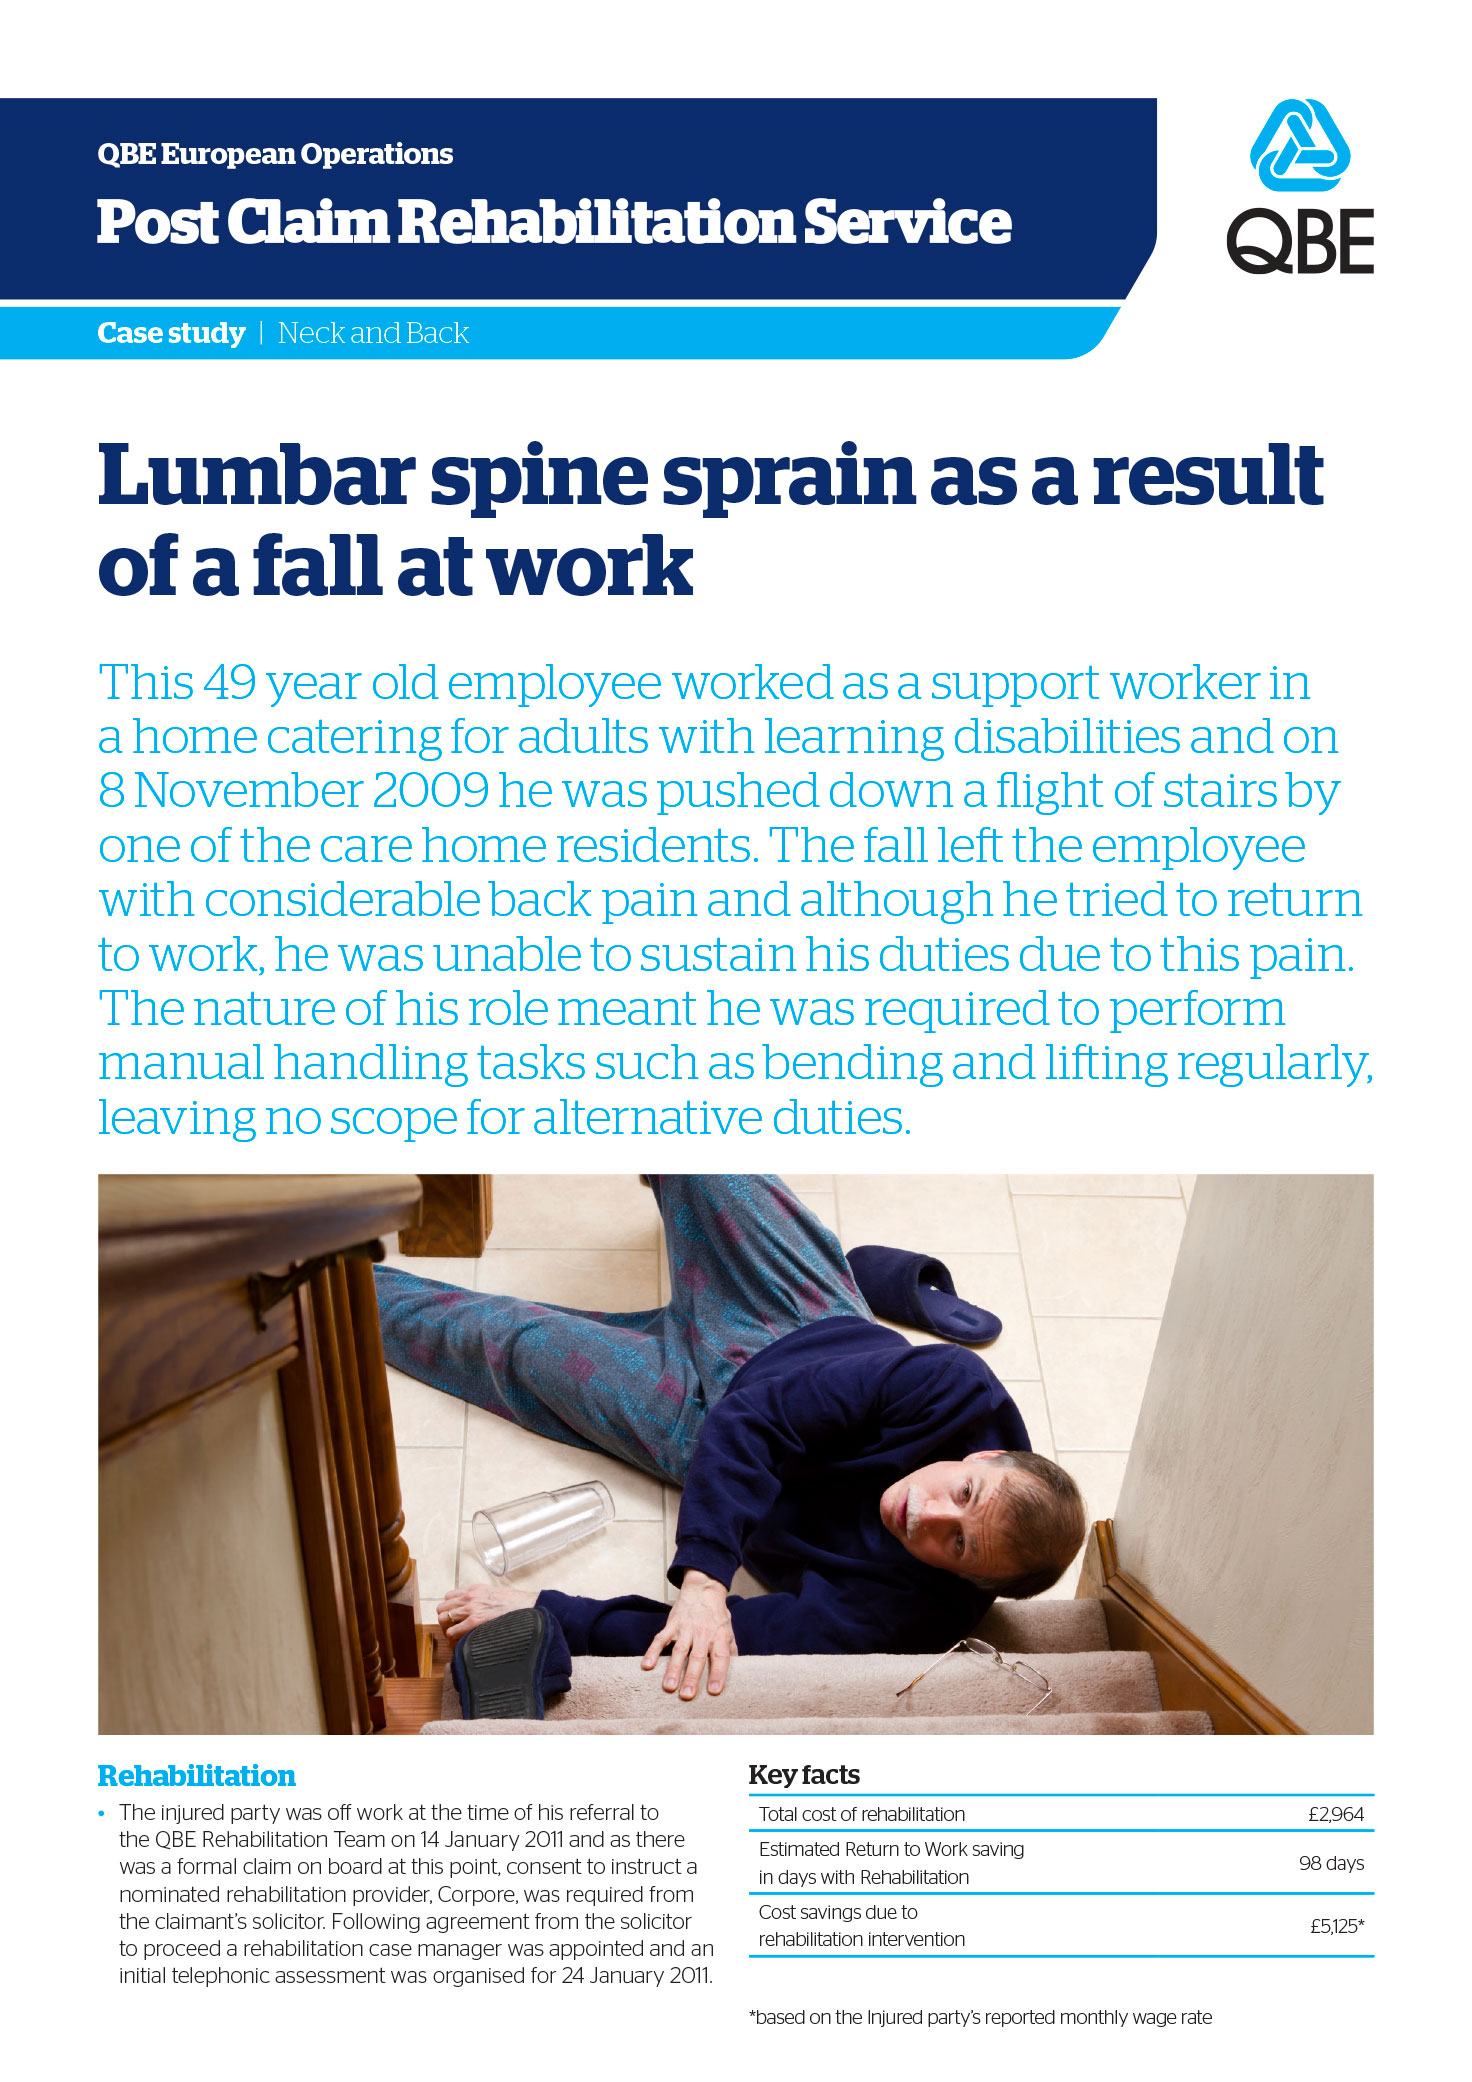 Lumbar spine sprain as a result of a fall at work